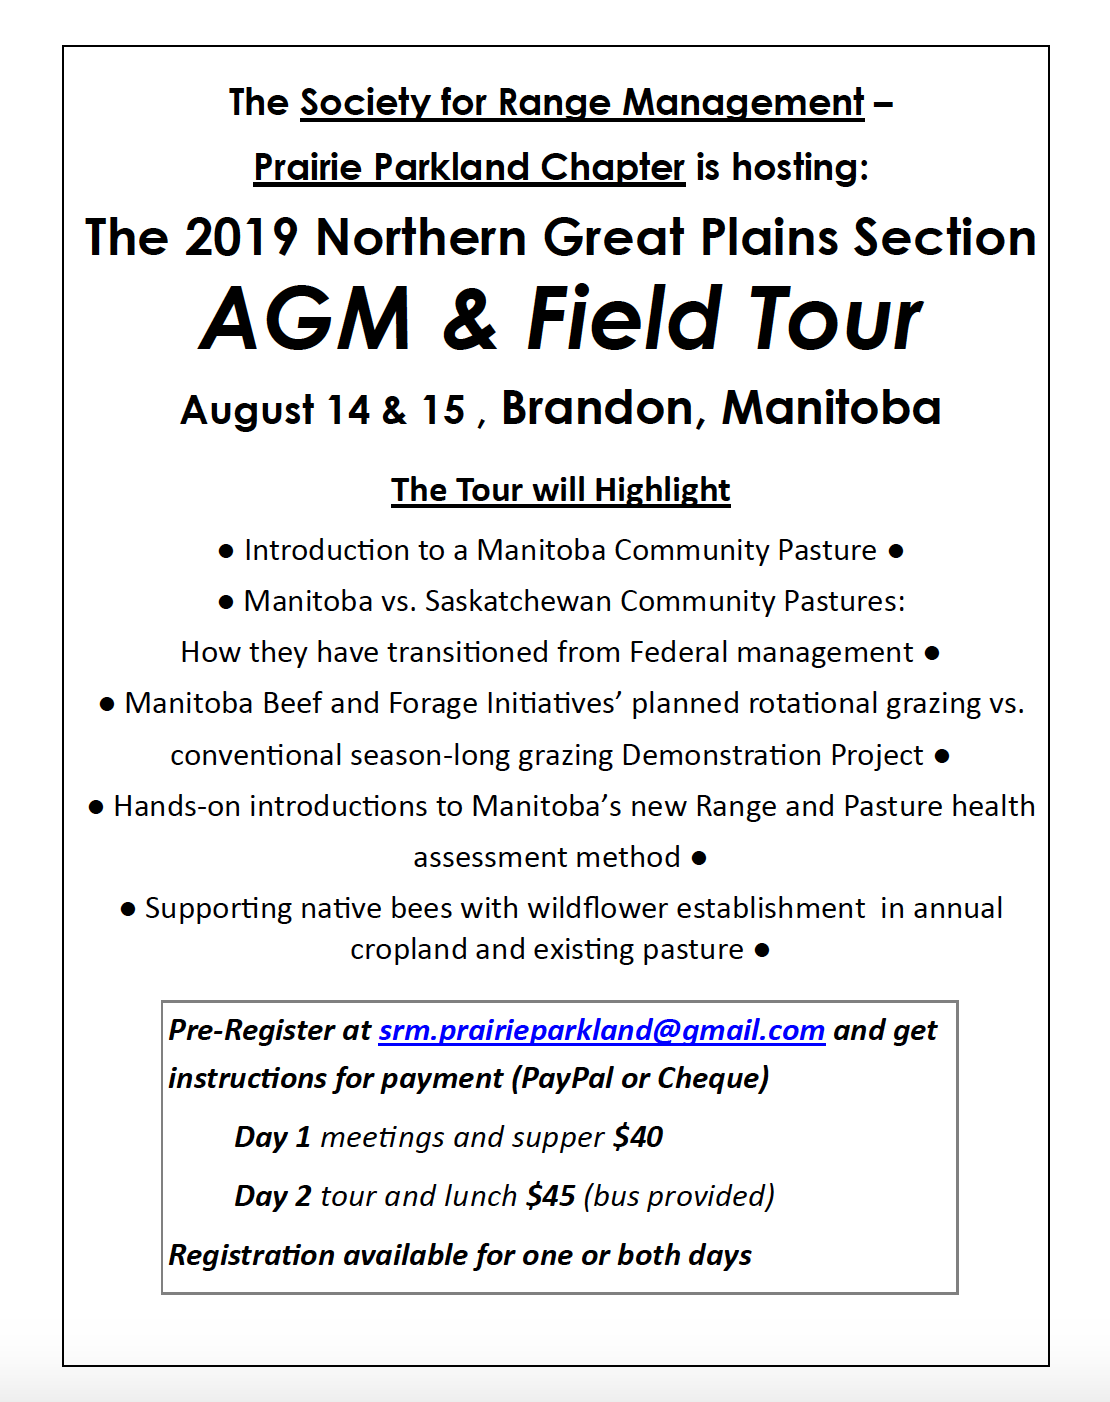 NGP Section AGM 2019_Flyer Agenda p1.png